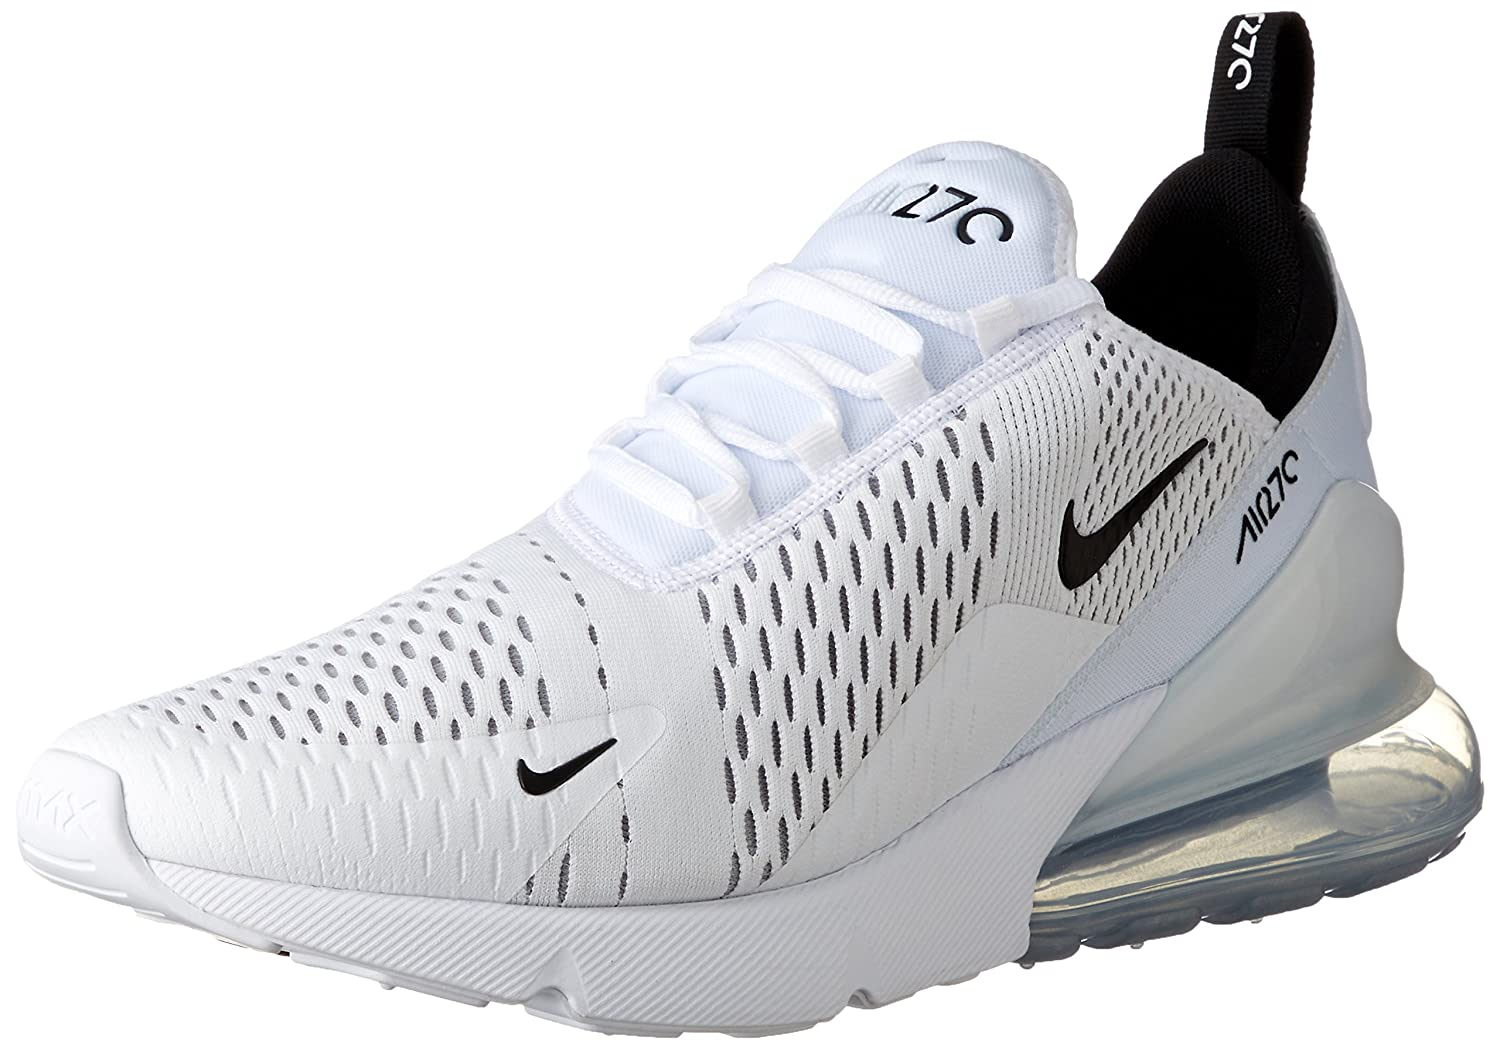 wholesale dealer 727d3 d468c Nike Air Max 270, Chaussures de Running Homme  Amazon.fr  Chaussures et Sacs